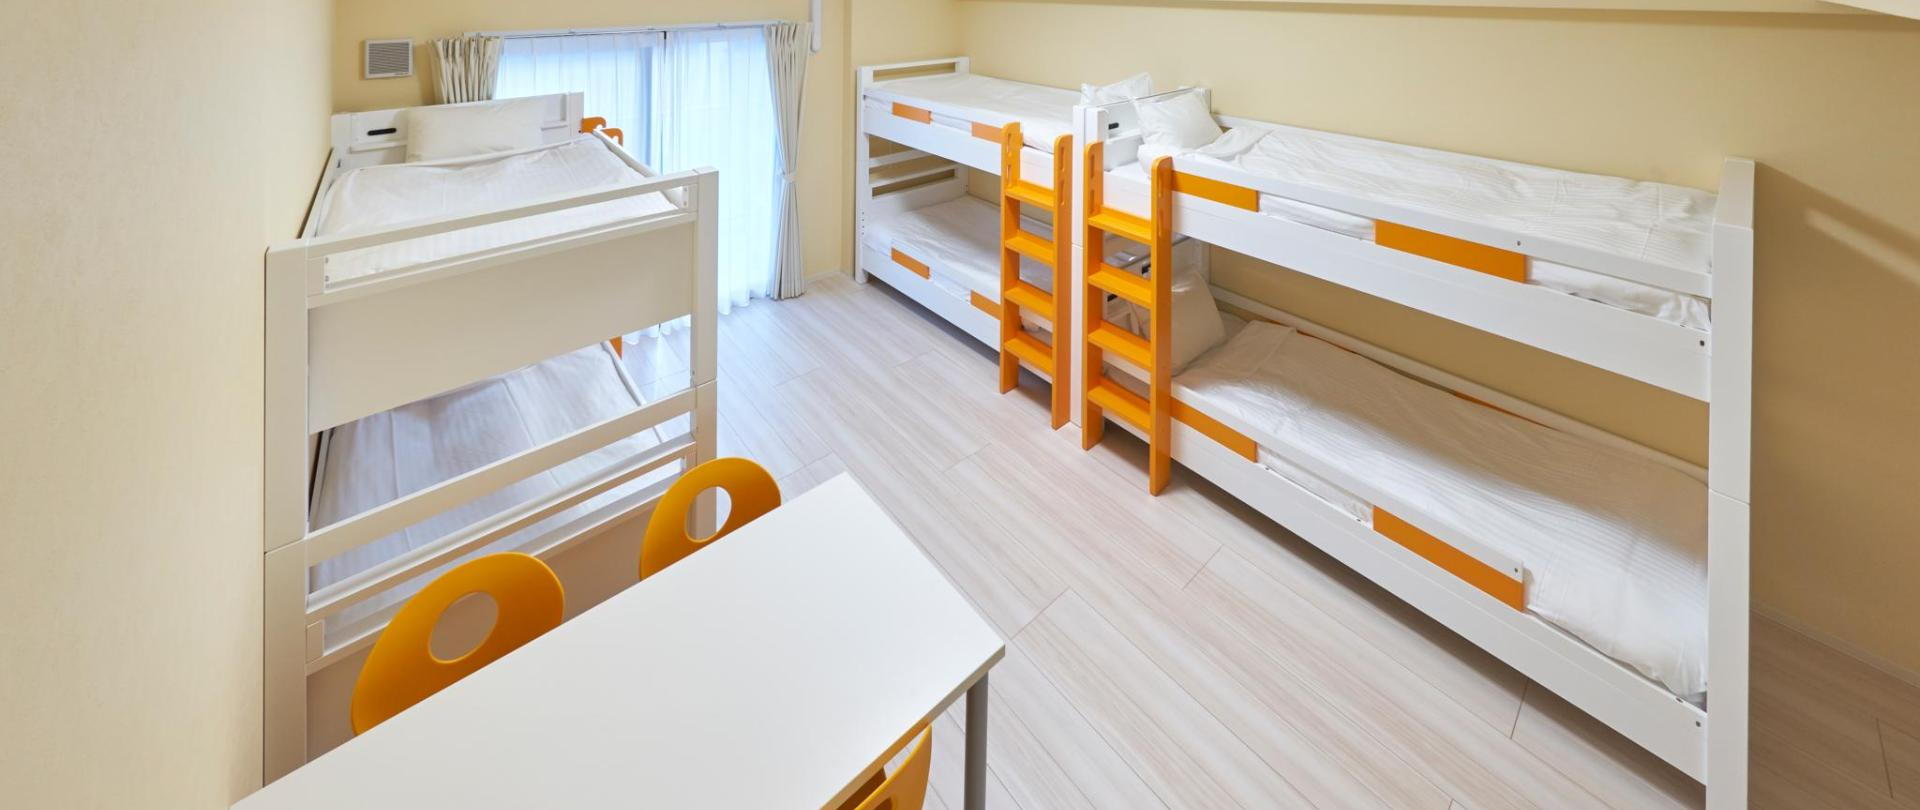 Dormitory Room for 6 people(6).jpg